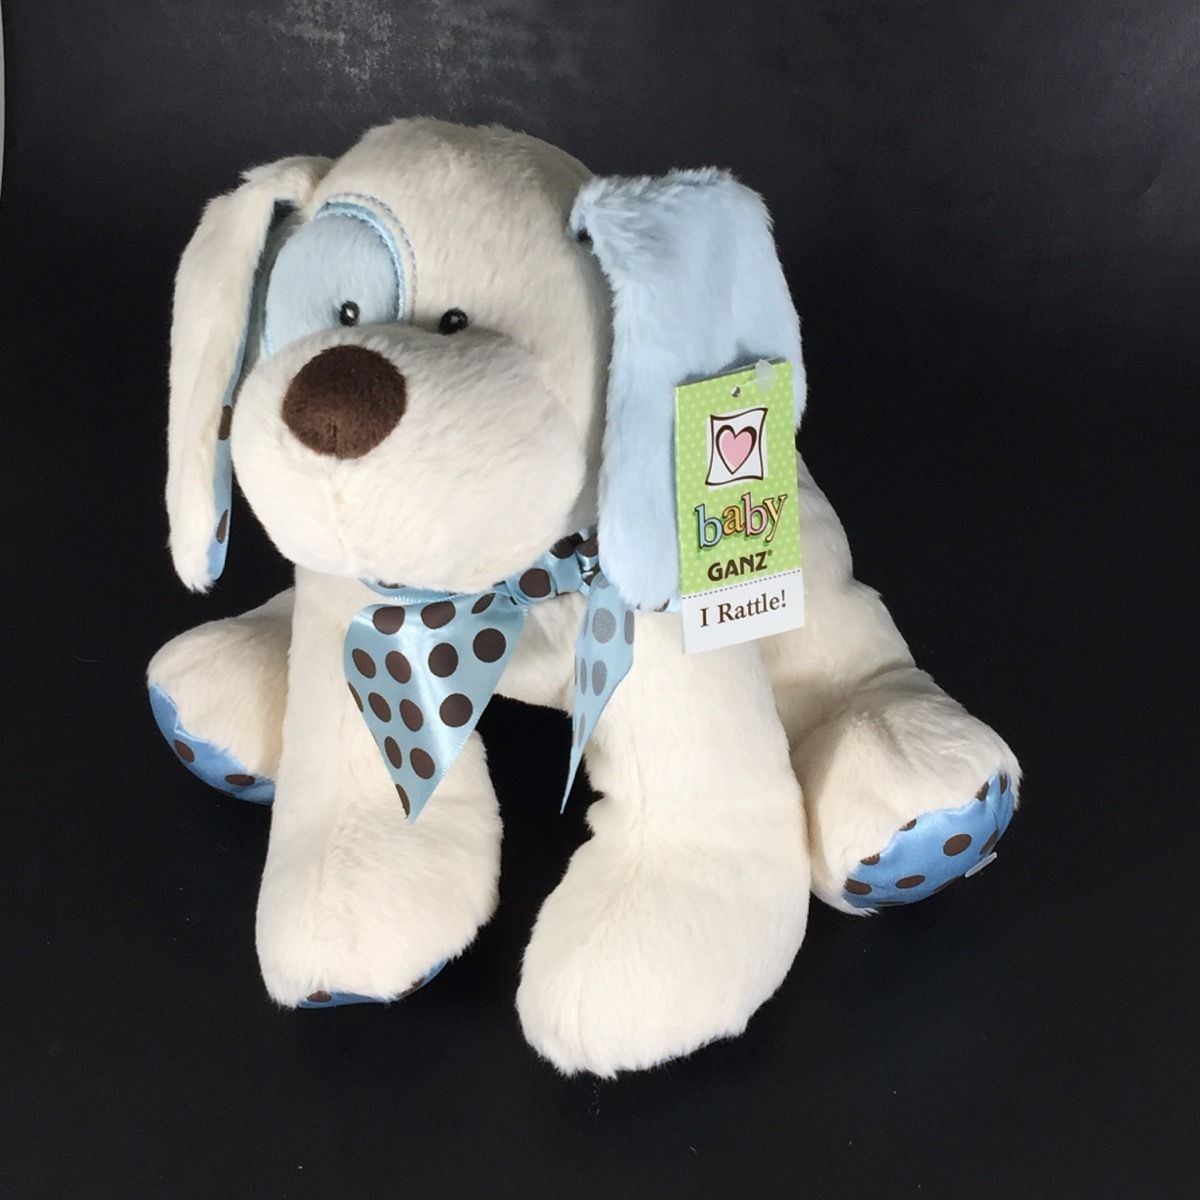 Baby GANZ Stuffed Animal Dog Chocolate Drops Puppy Rattle Blue Plush New Toy